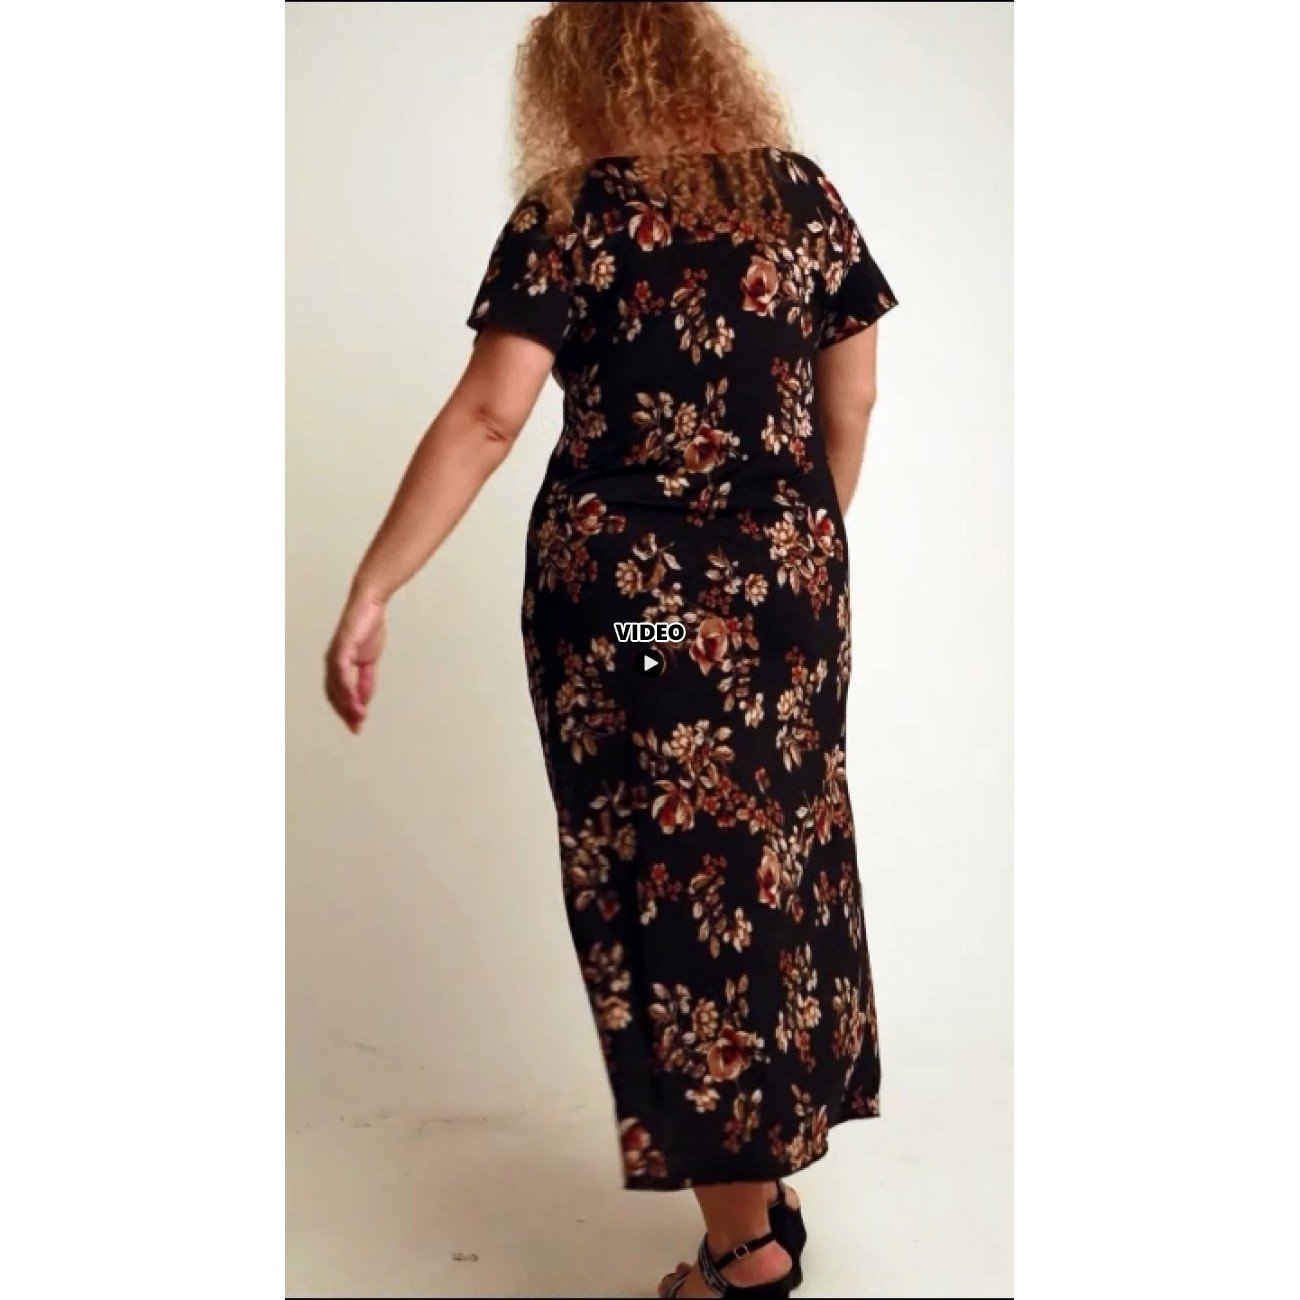 A20-4723FK Dress with pattern